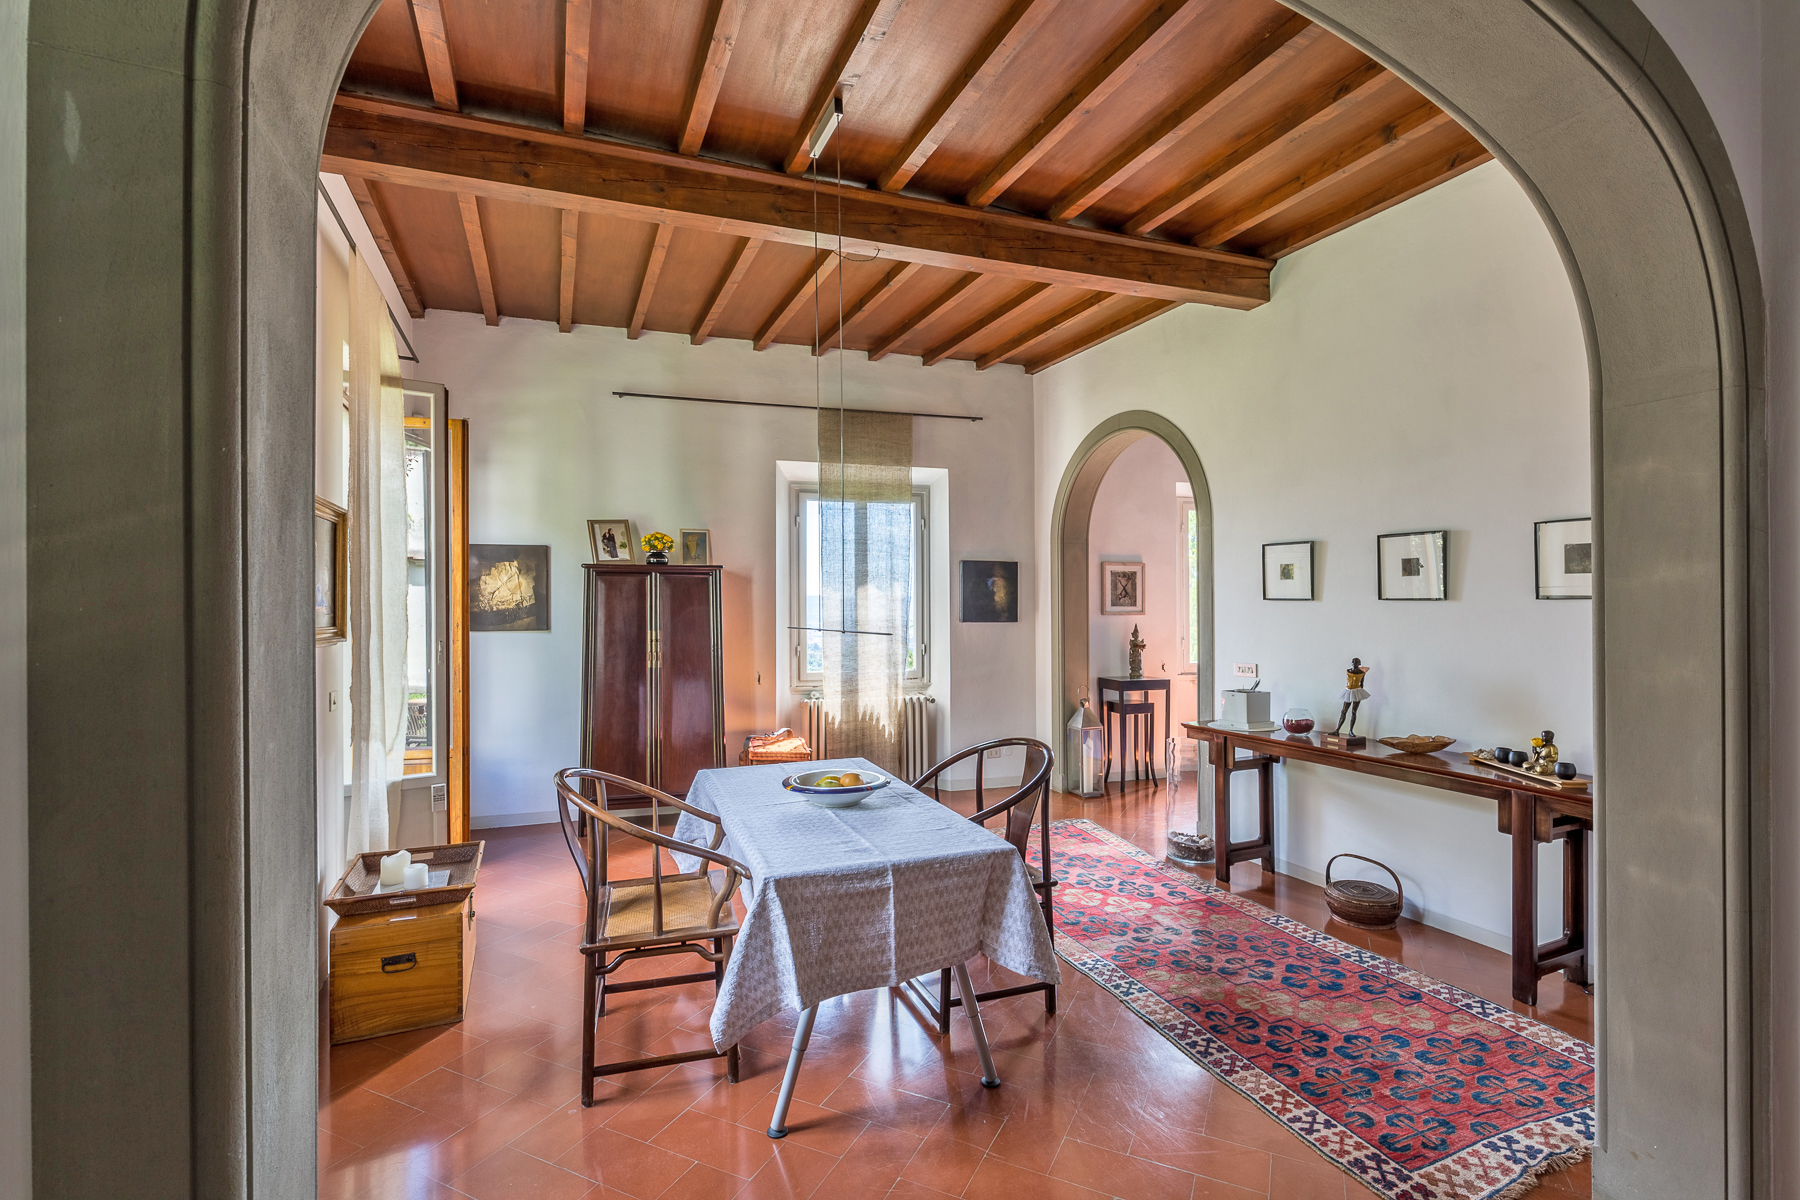 Additional photo for property listing at Bright apartment with private garden Via della Lastra Firenze, Florence 50139 Italia